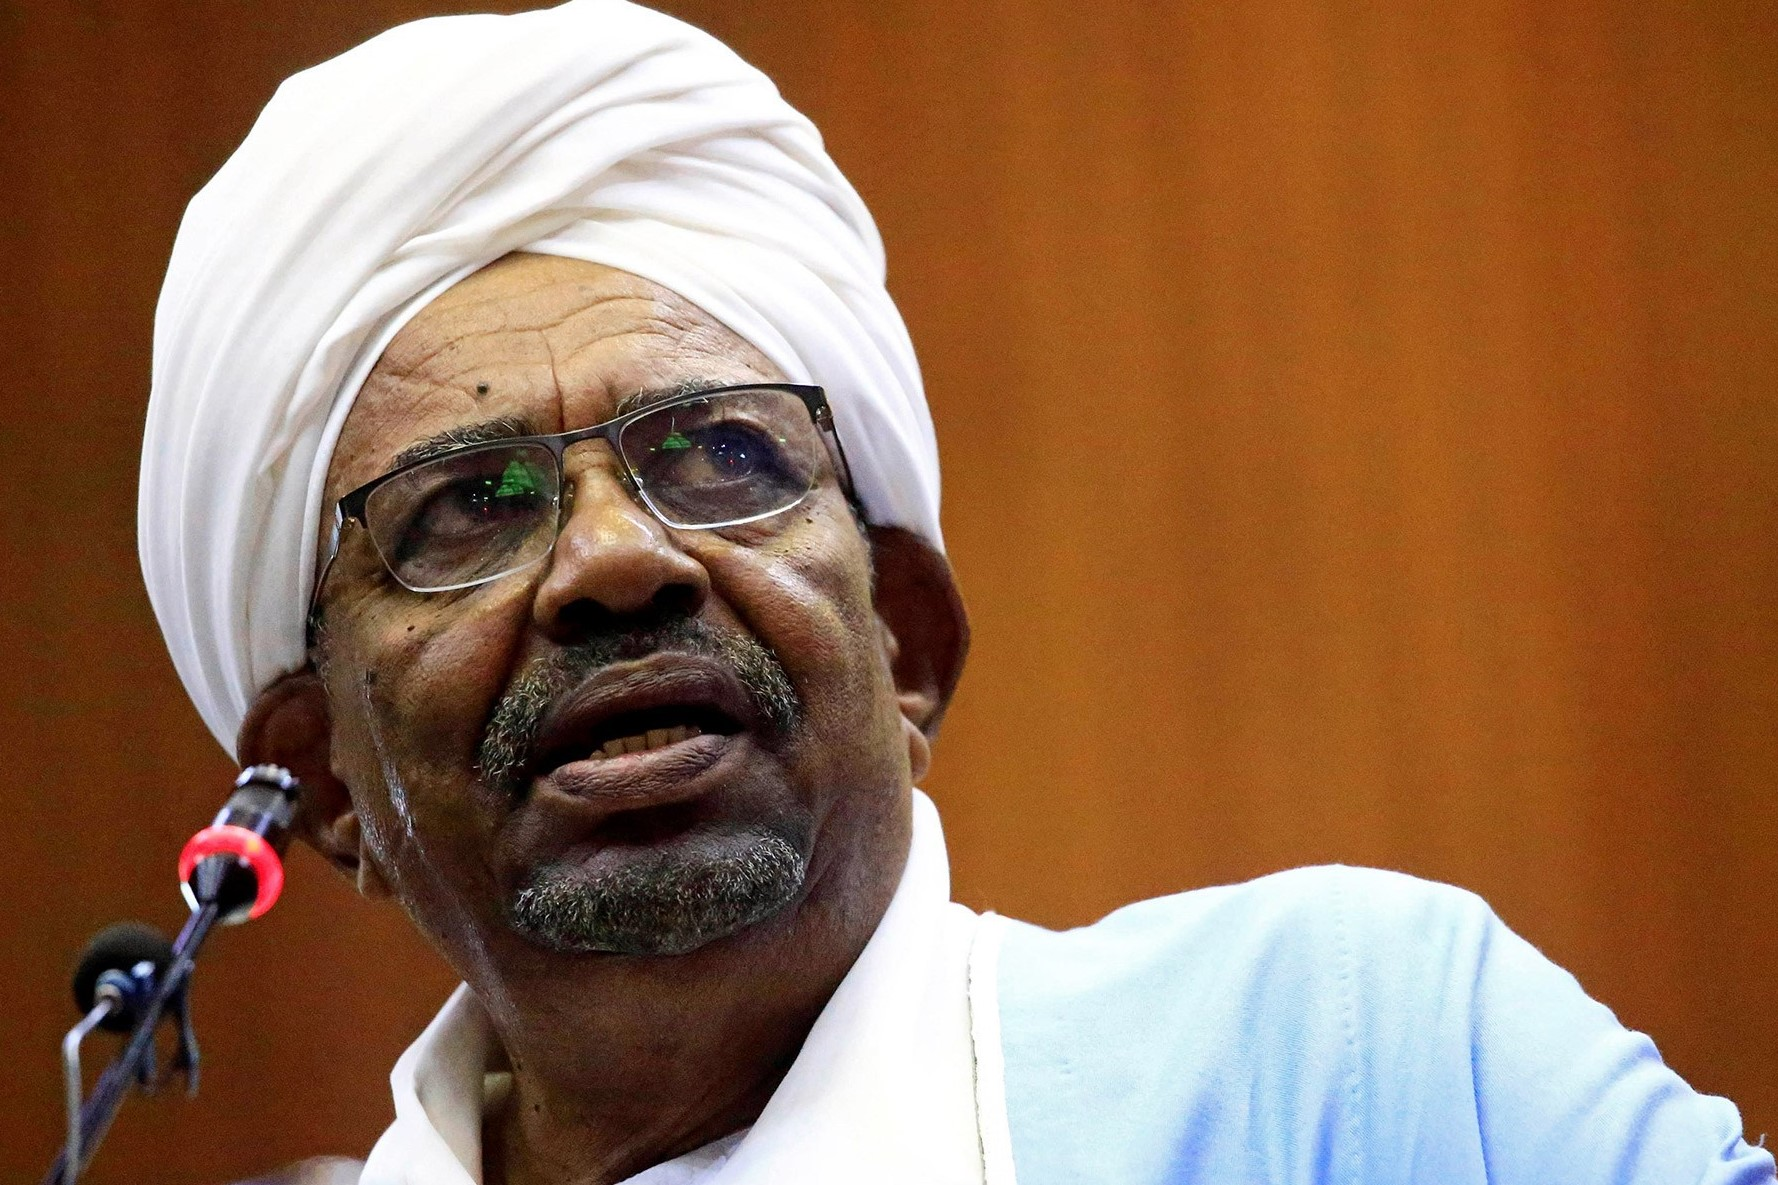 Will Sudan hand over the ousted president Omar al-Bashir to ICC?